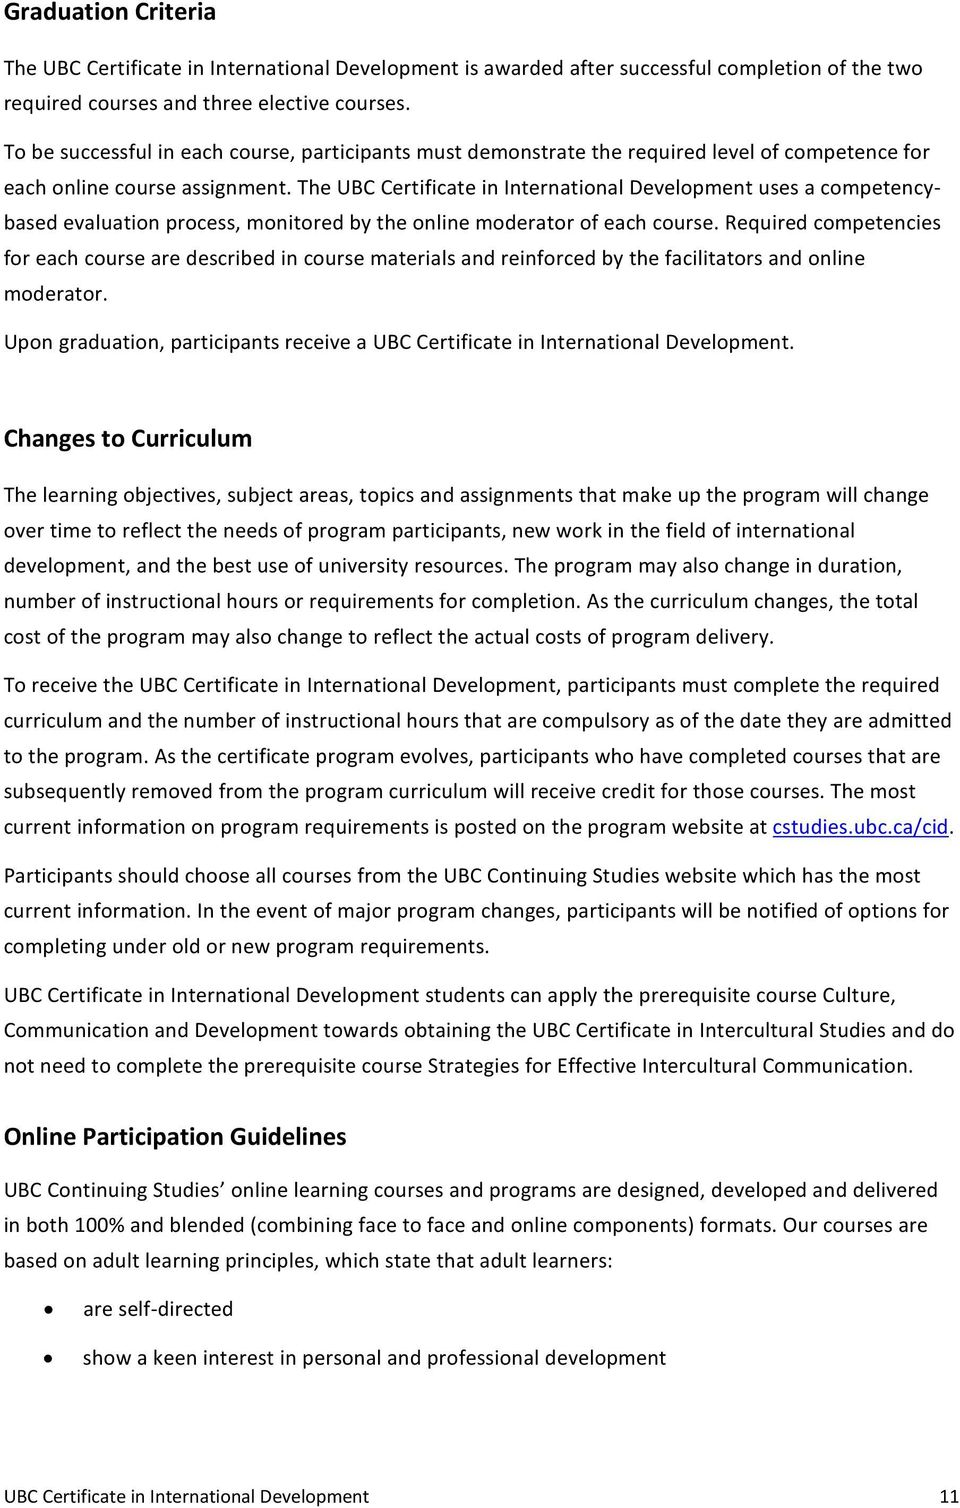 The UBC Certificate in International Development uses a competencybased evaluation process, monitored by the online moderator of each course.